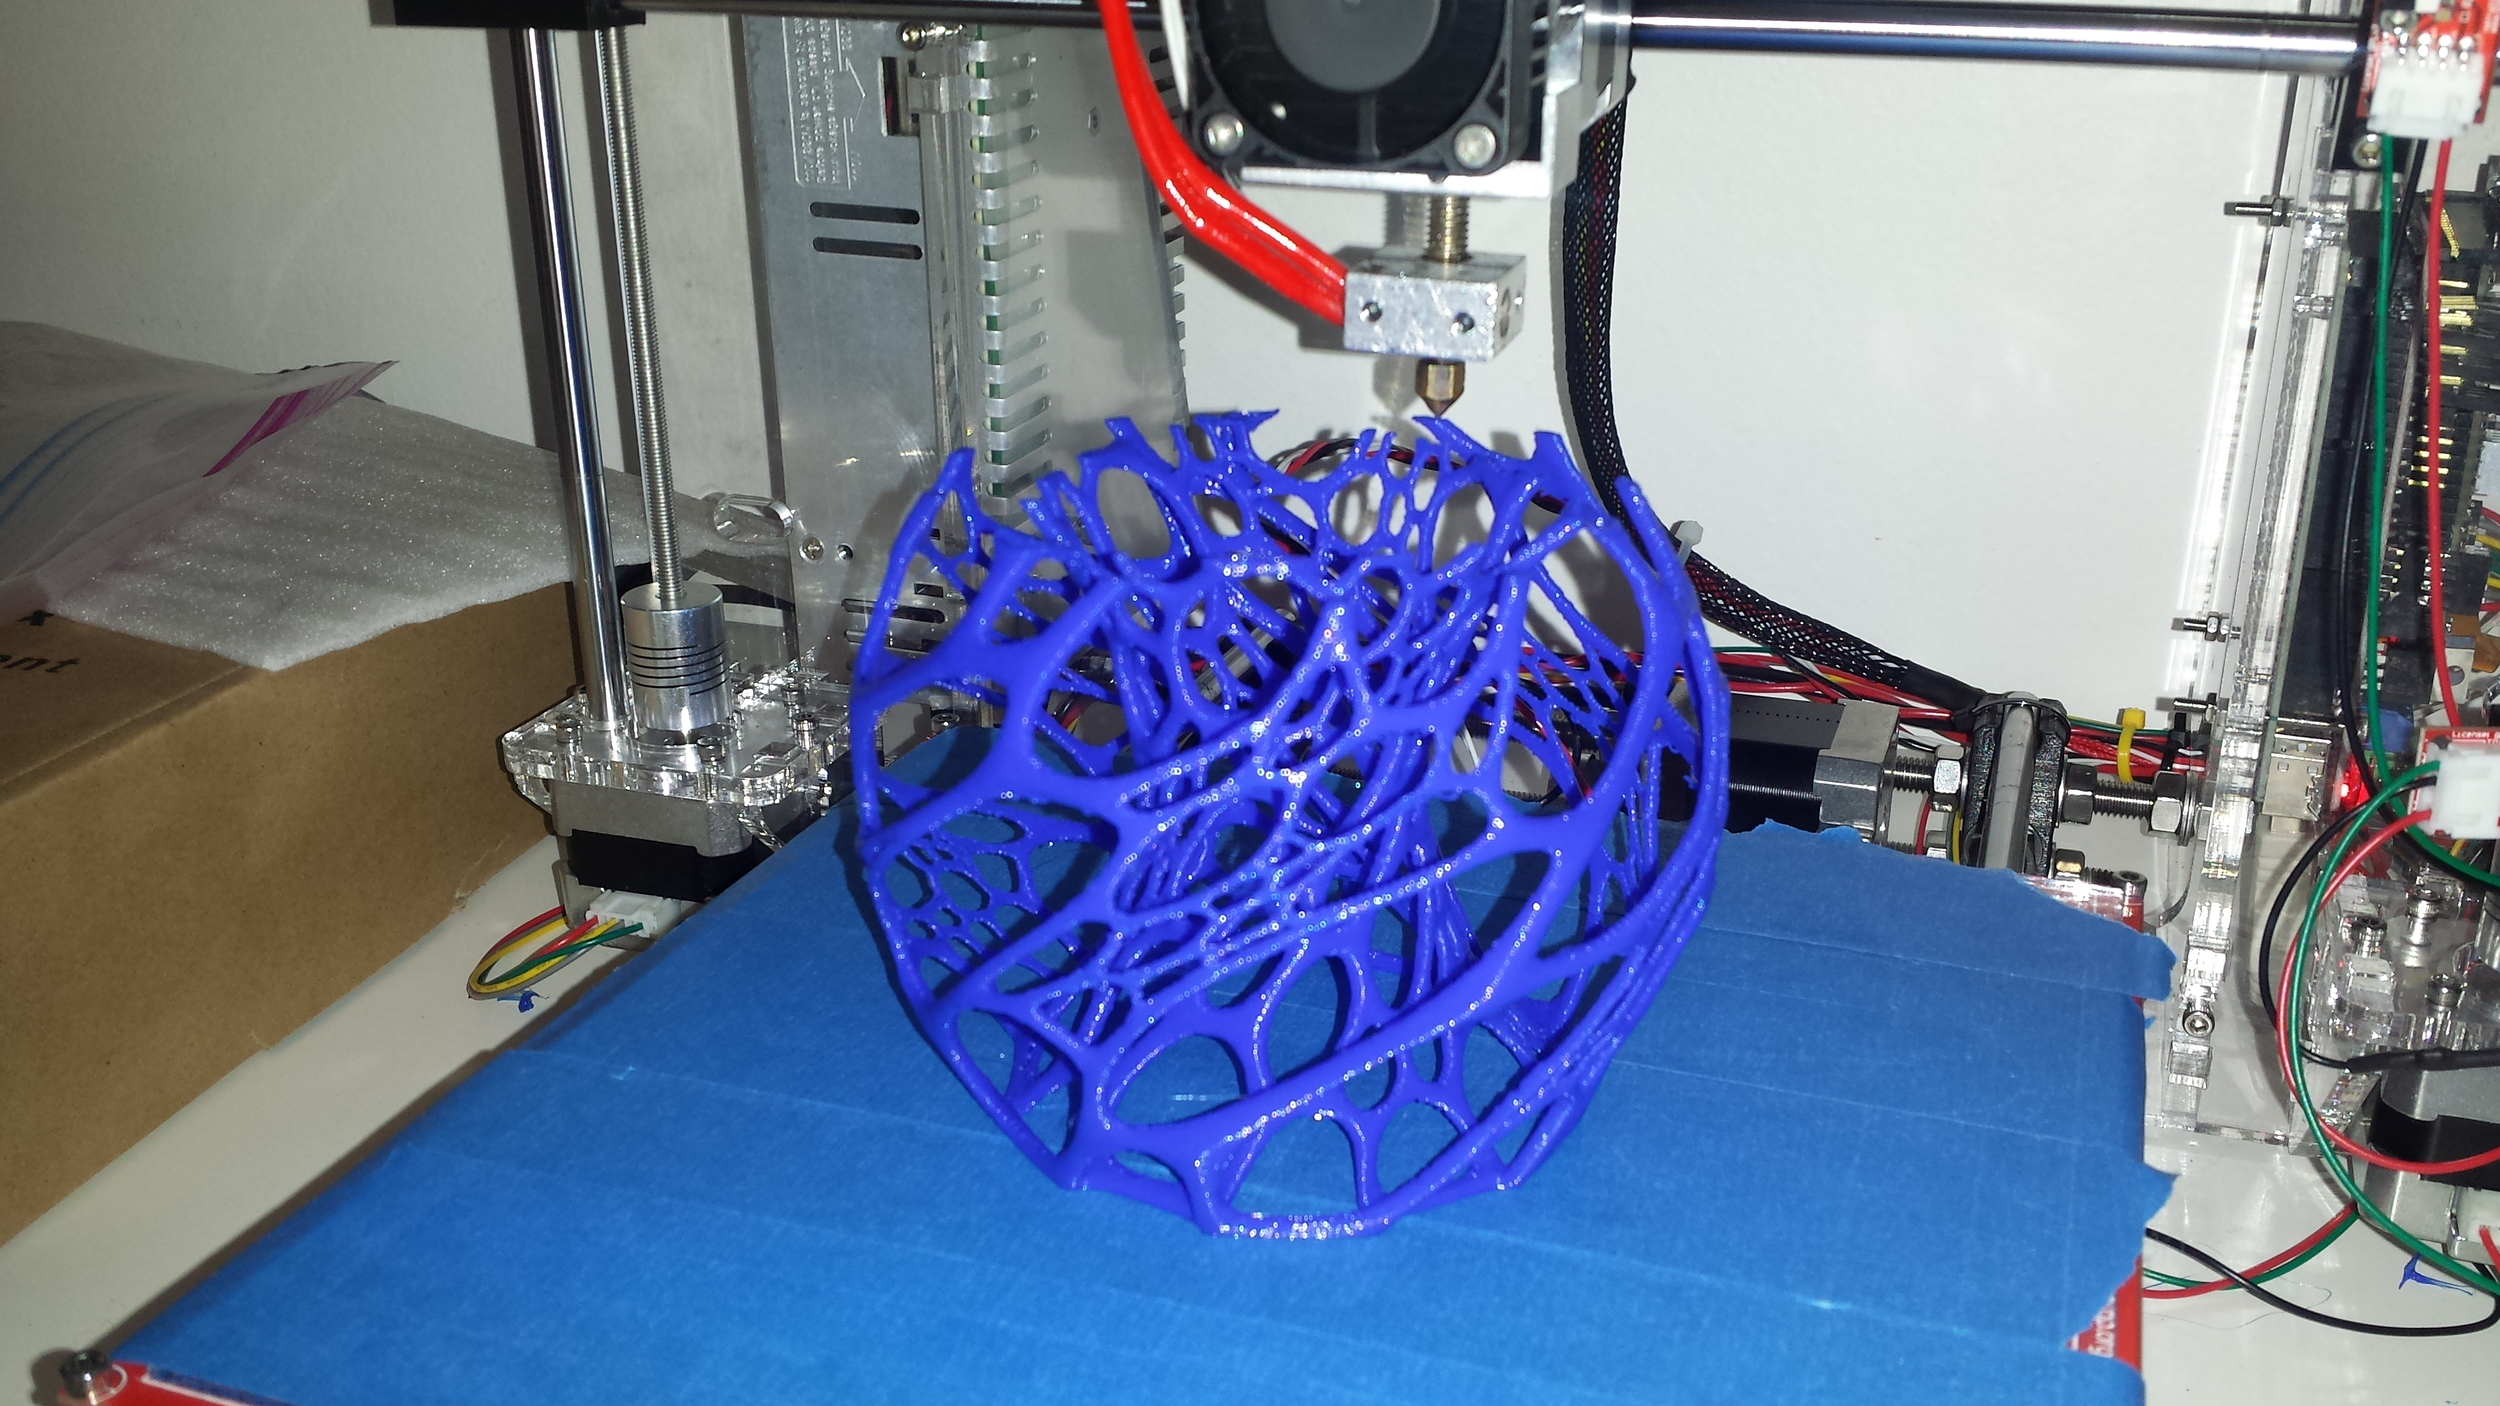 Printing a Cellular Lamp from Thingiverse